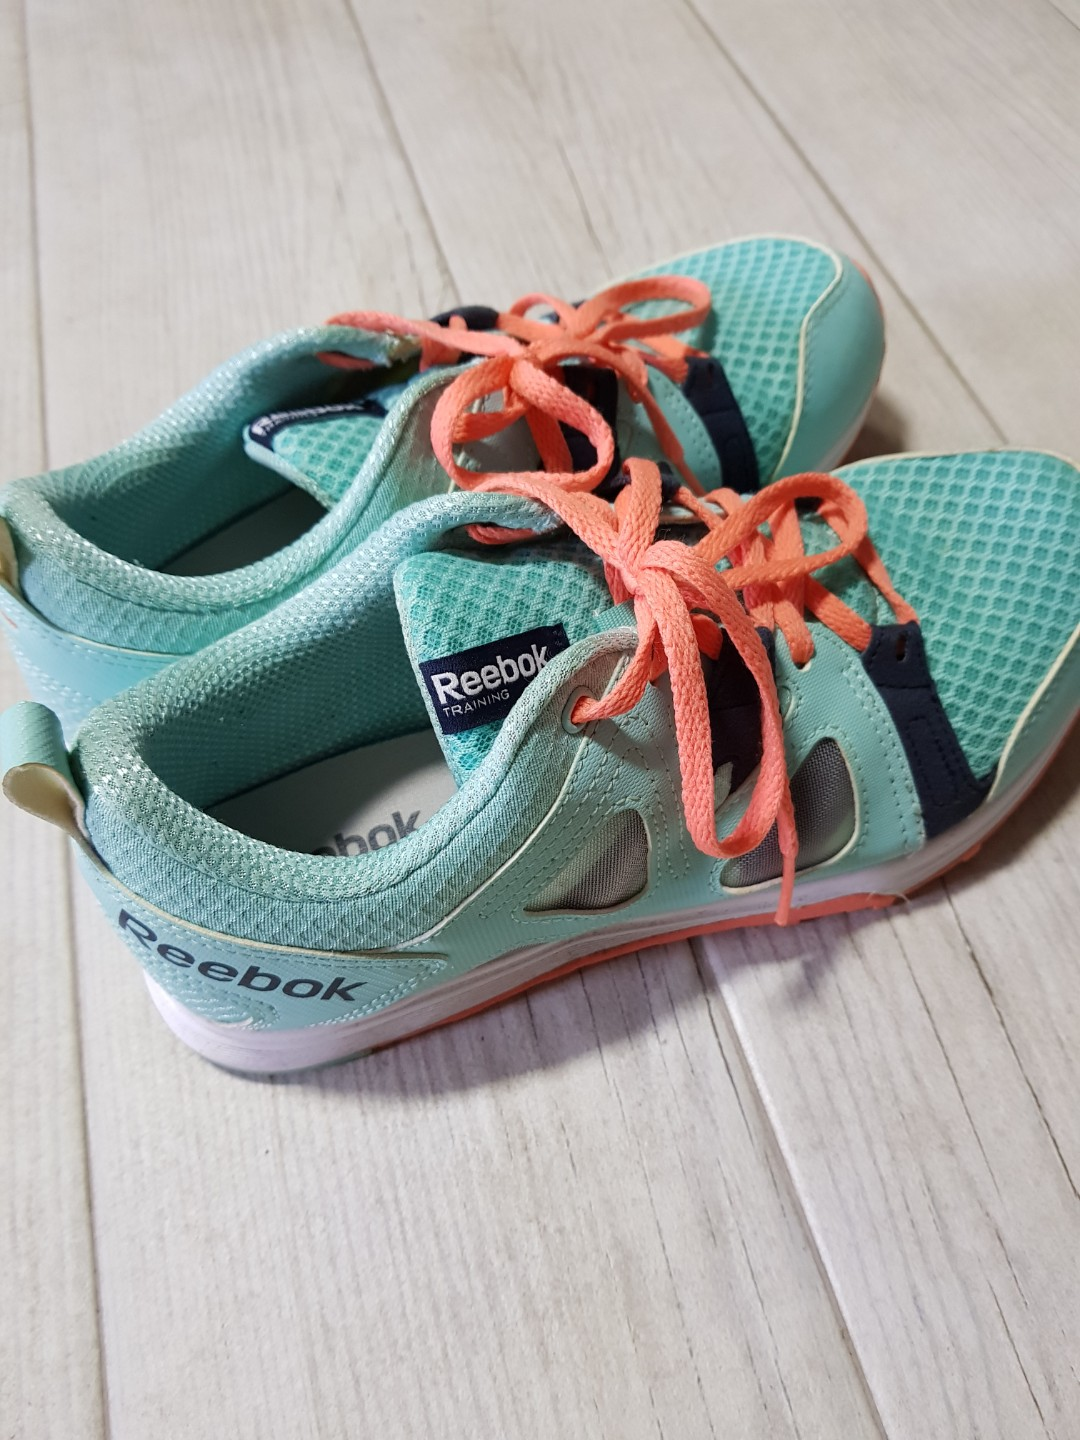 4e135dd02 Reebok ladies sport shoes, Sports, Sports Apparel on Carousell